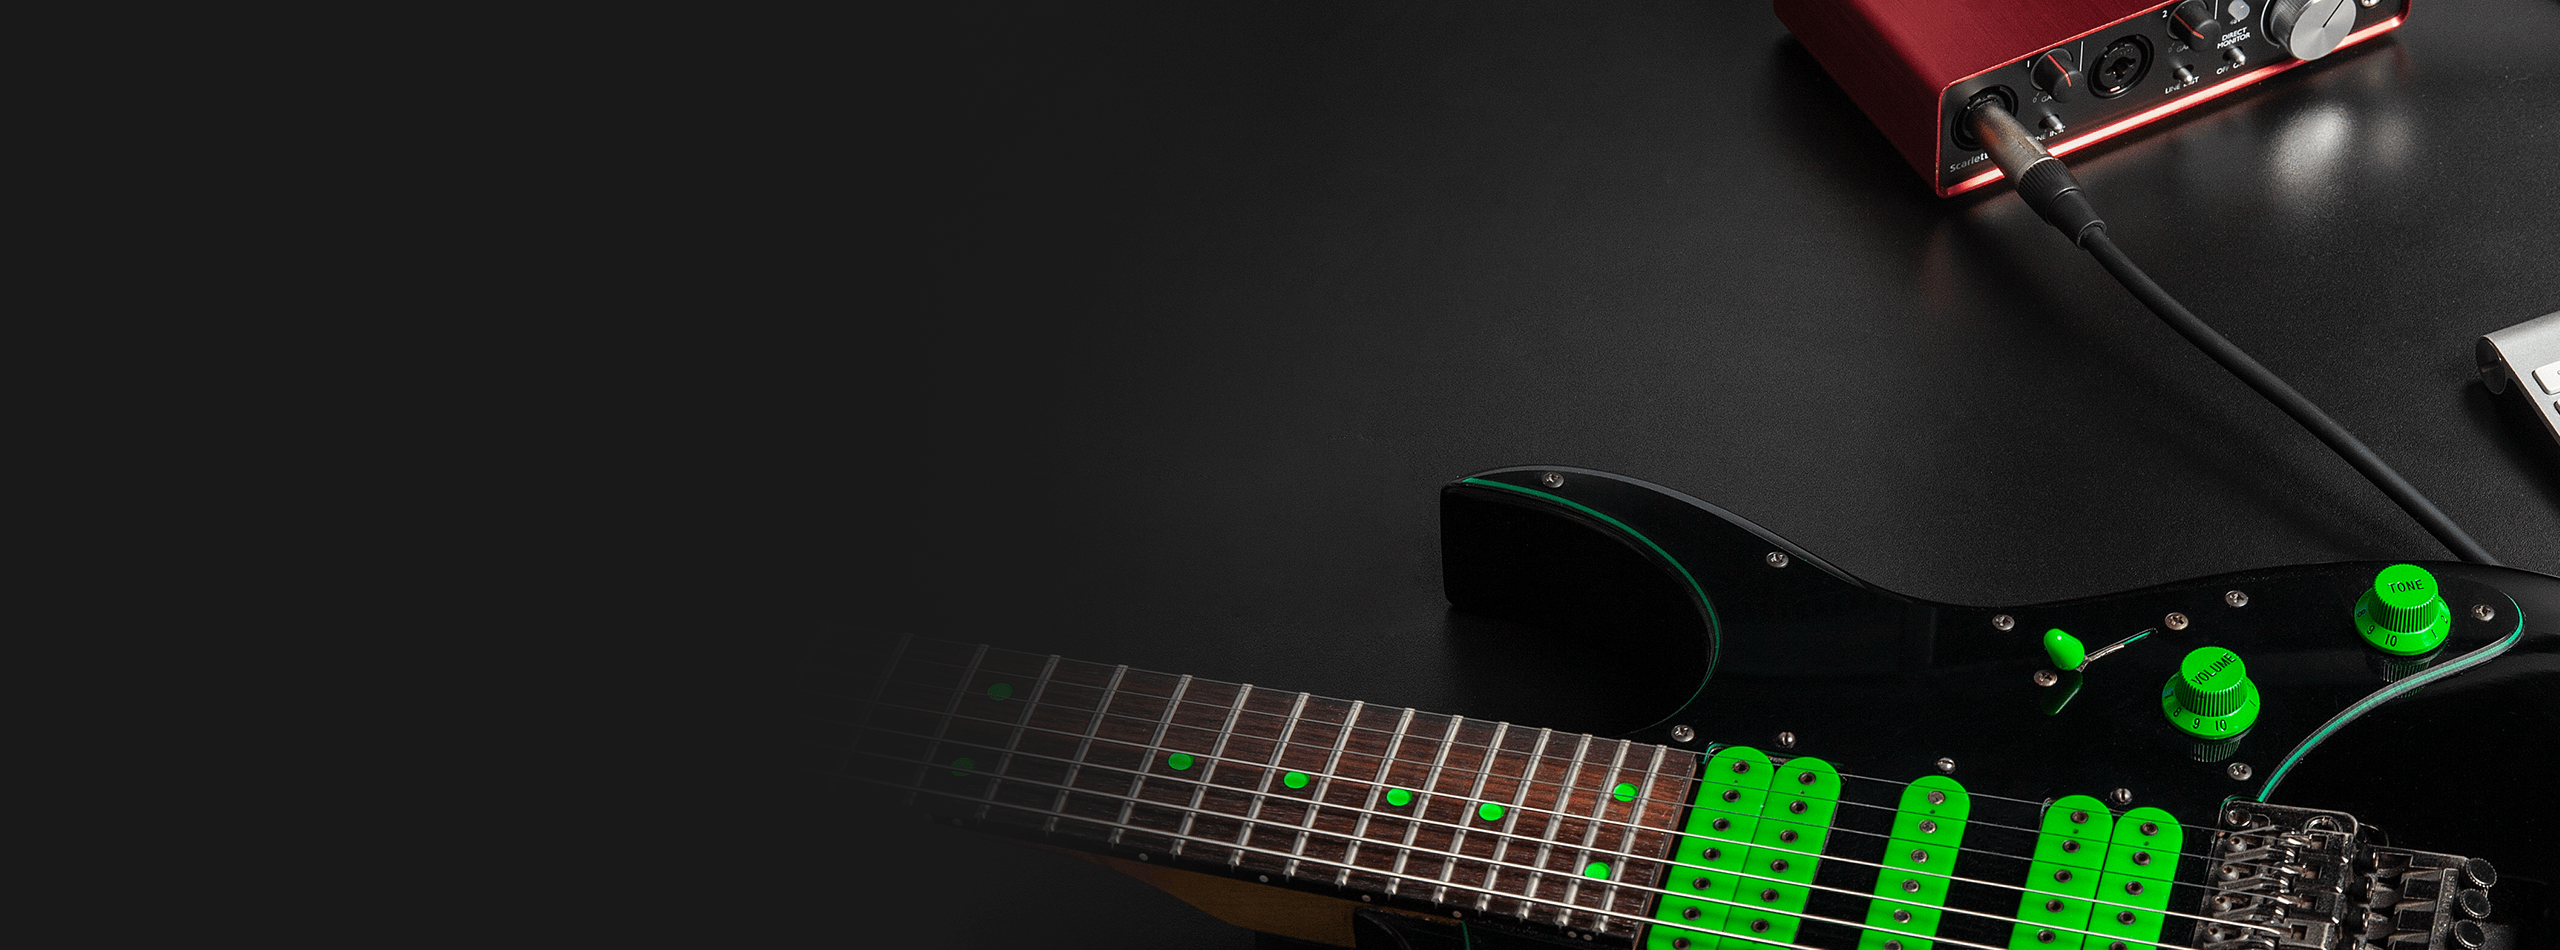 7-string Guitar and recording interface on a desk